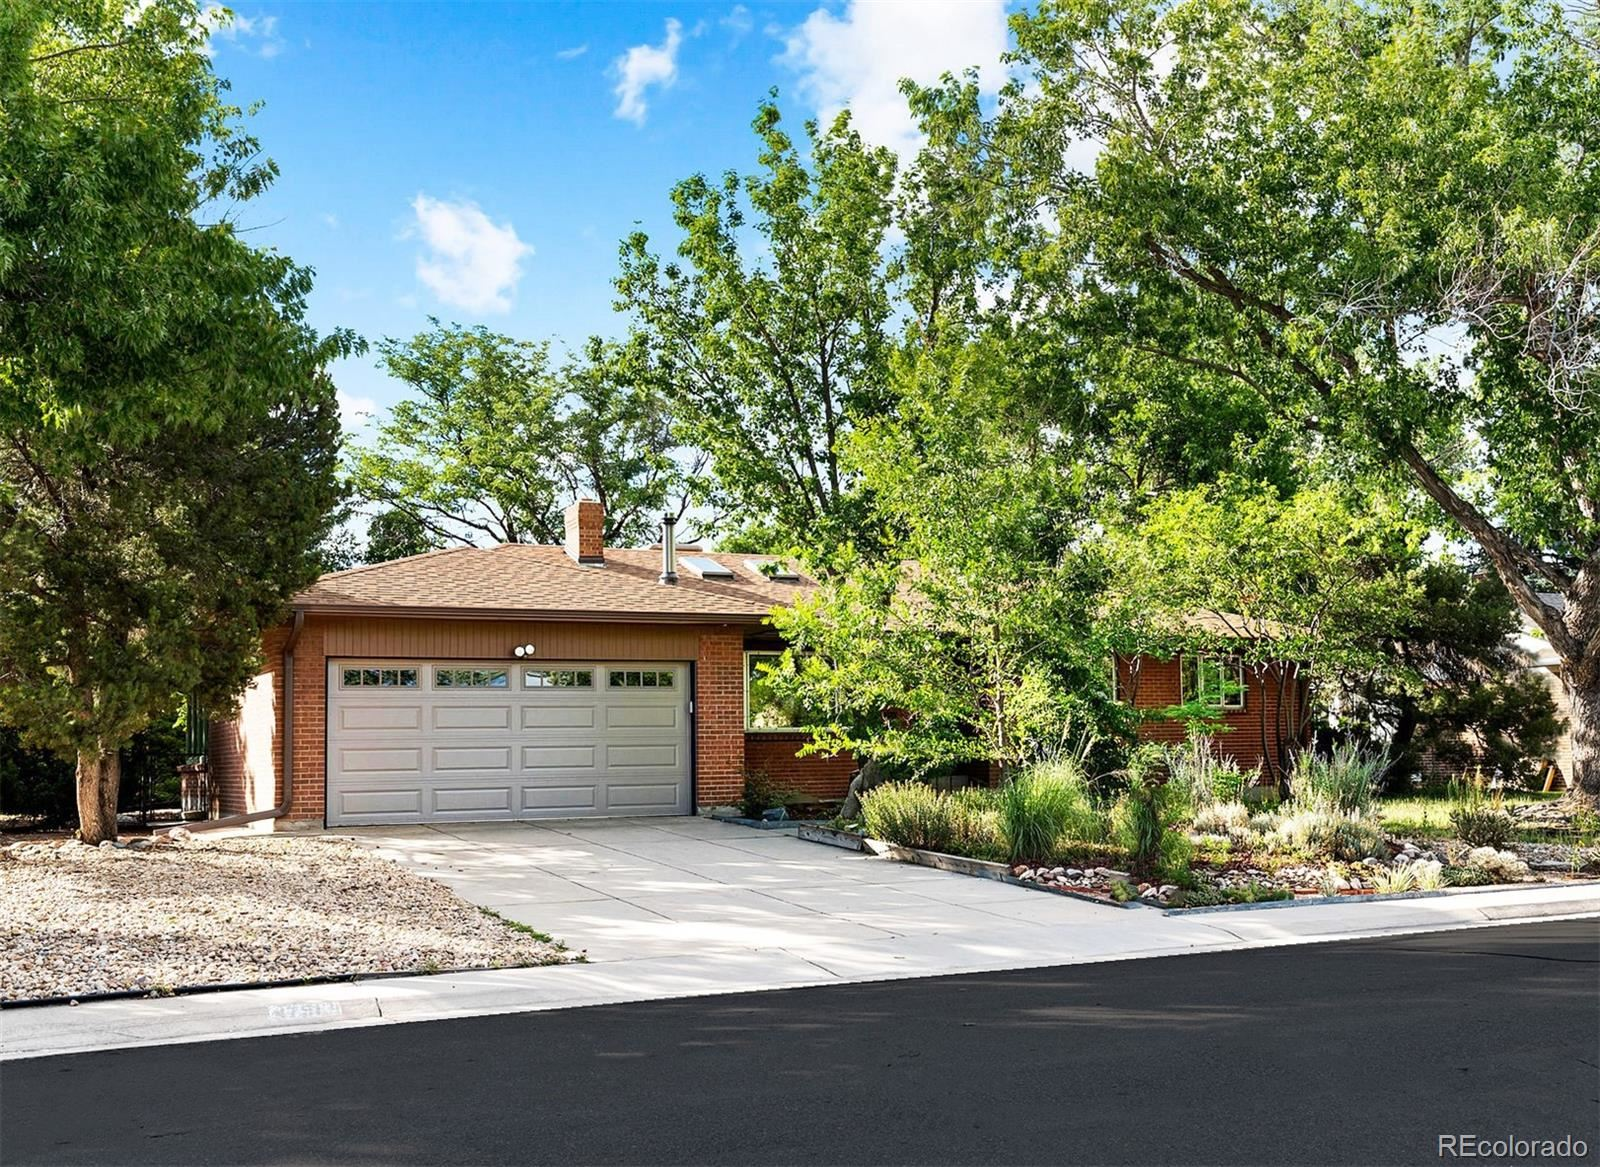 1751 S Valentine Way, Lakewood, CO 80228 - #: 4937504